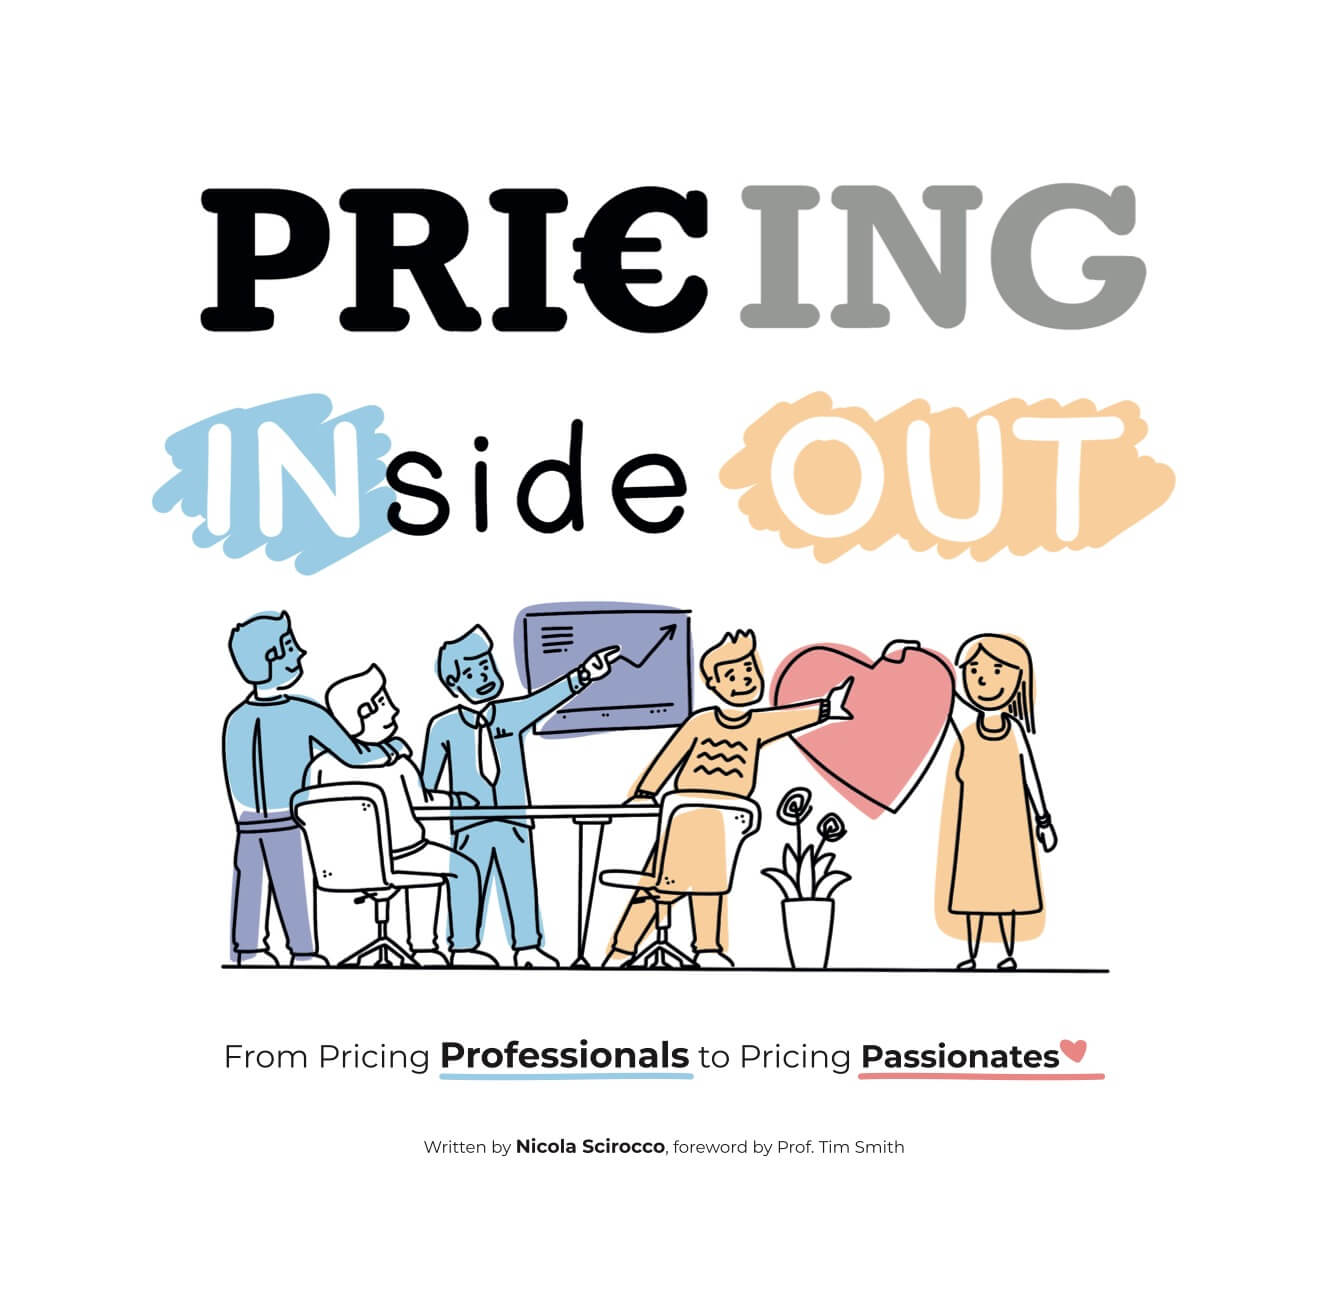 Transform your approach to holistic pricing with Pricing INside OUT